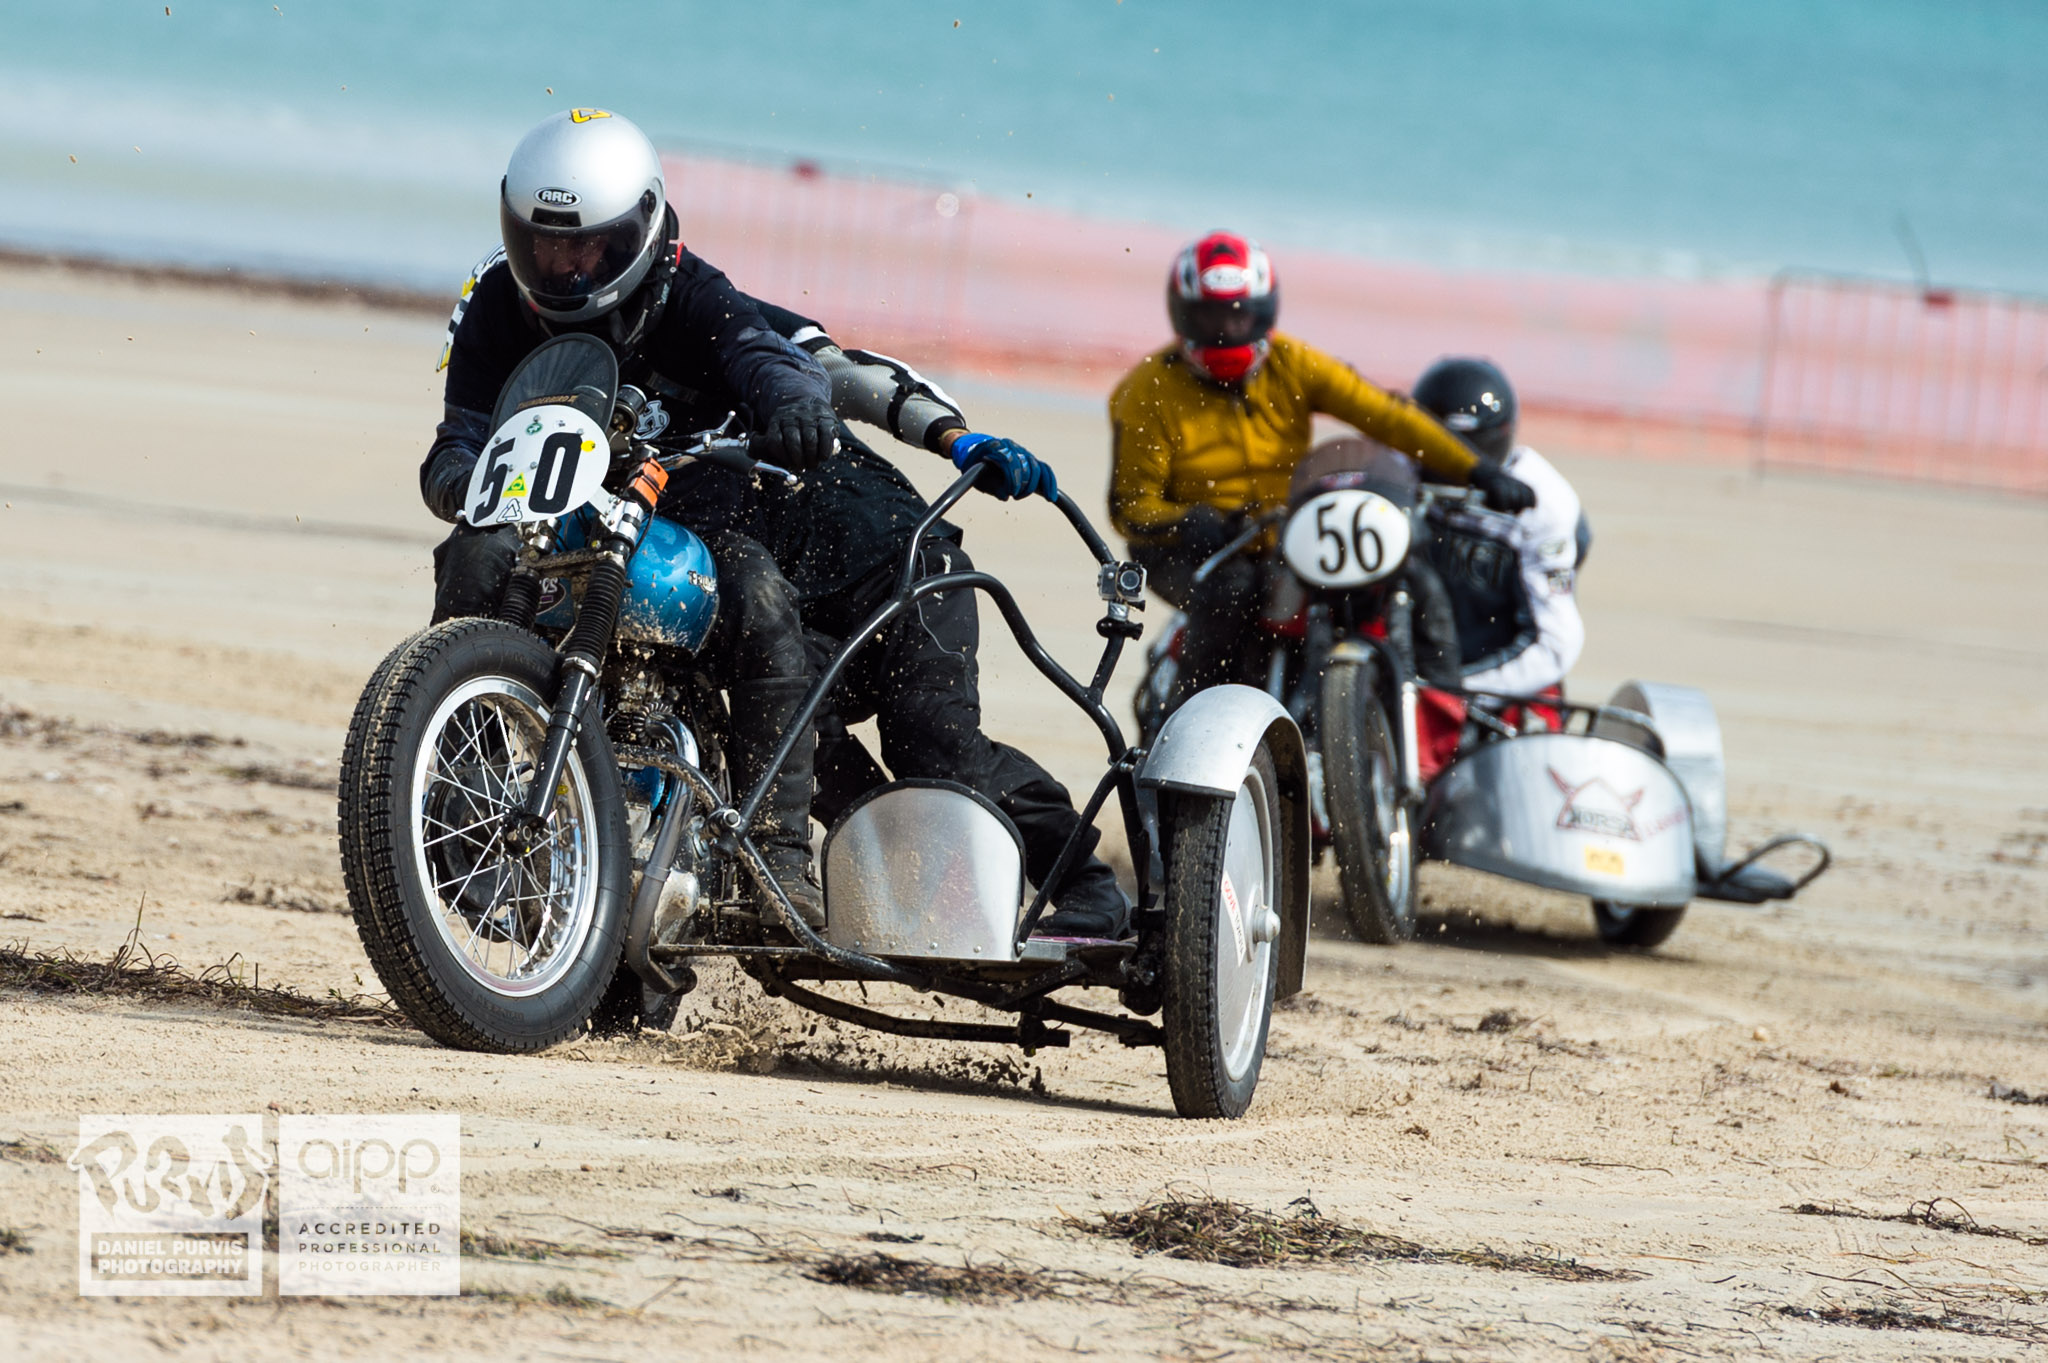 (50) Paul Dempsey / Carey Dechamps riding 1950 Triumph chased by (56) David Sigston / Vince Hitchman riding 1956 Norton/BSA, rounding final corner. © Daniel Purvis